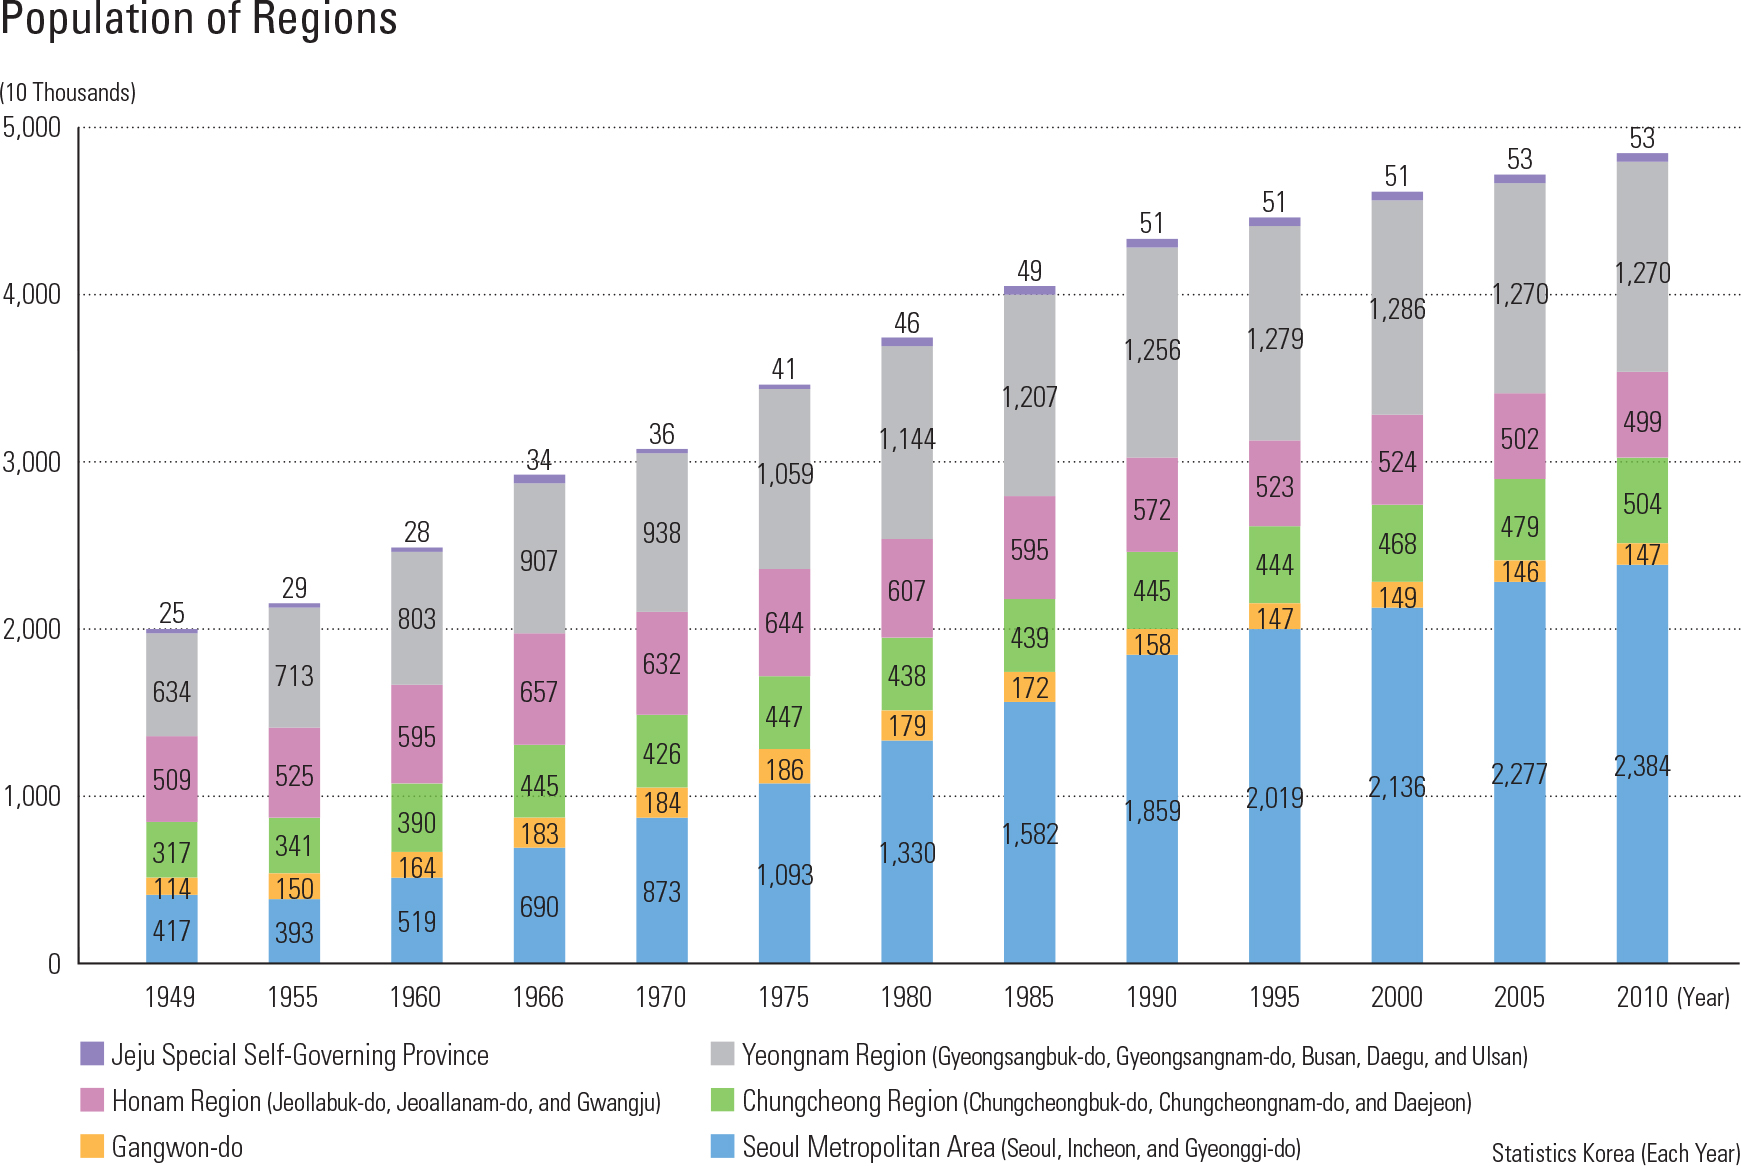 """Population of Regions<p class=""""oz_zoom"""" zimg=""""http://imagedata.cafe24.com/us_3/us3_98-2_2.jpg""""><span style=""""font-family:Nanum Myeongjo;""""><span style=""""font-size:18px;""""><span class=""""label label-danger"""">UPDATE DATA</span></span></p>"""